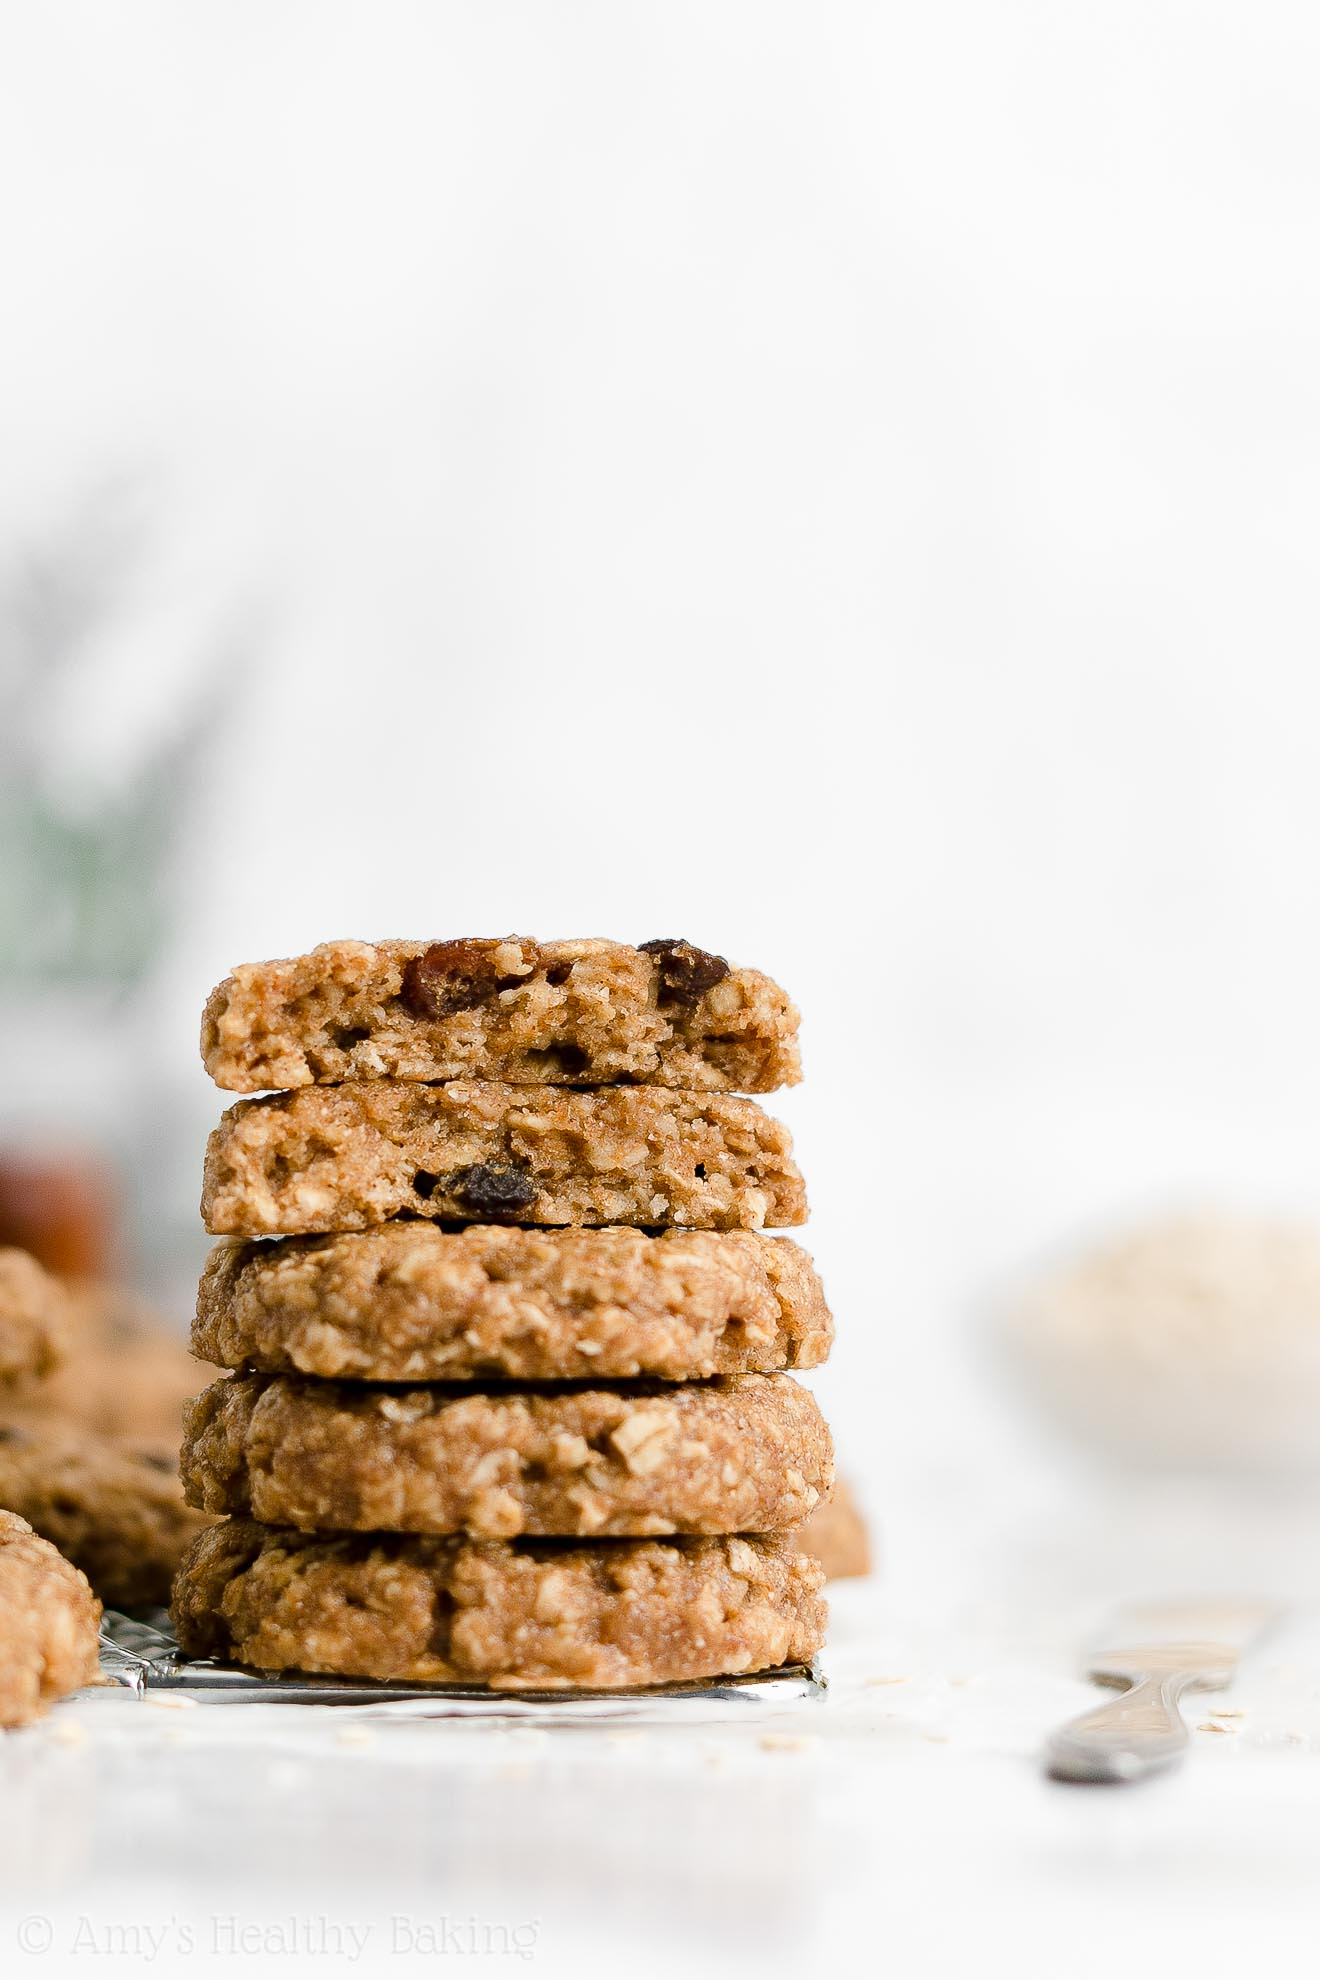 Best Soft Chewy Healthy Applesauce Egg Free Flourless Oatmeal Raisin Cookies